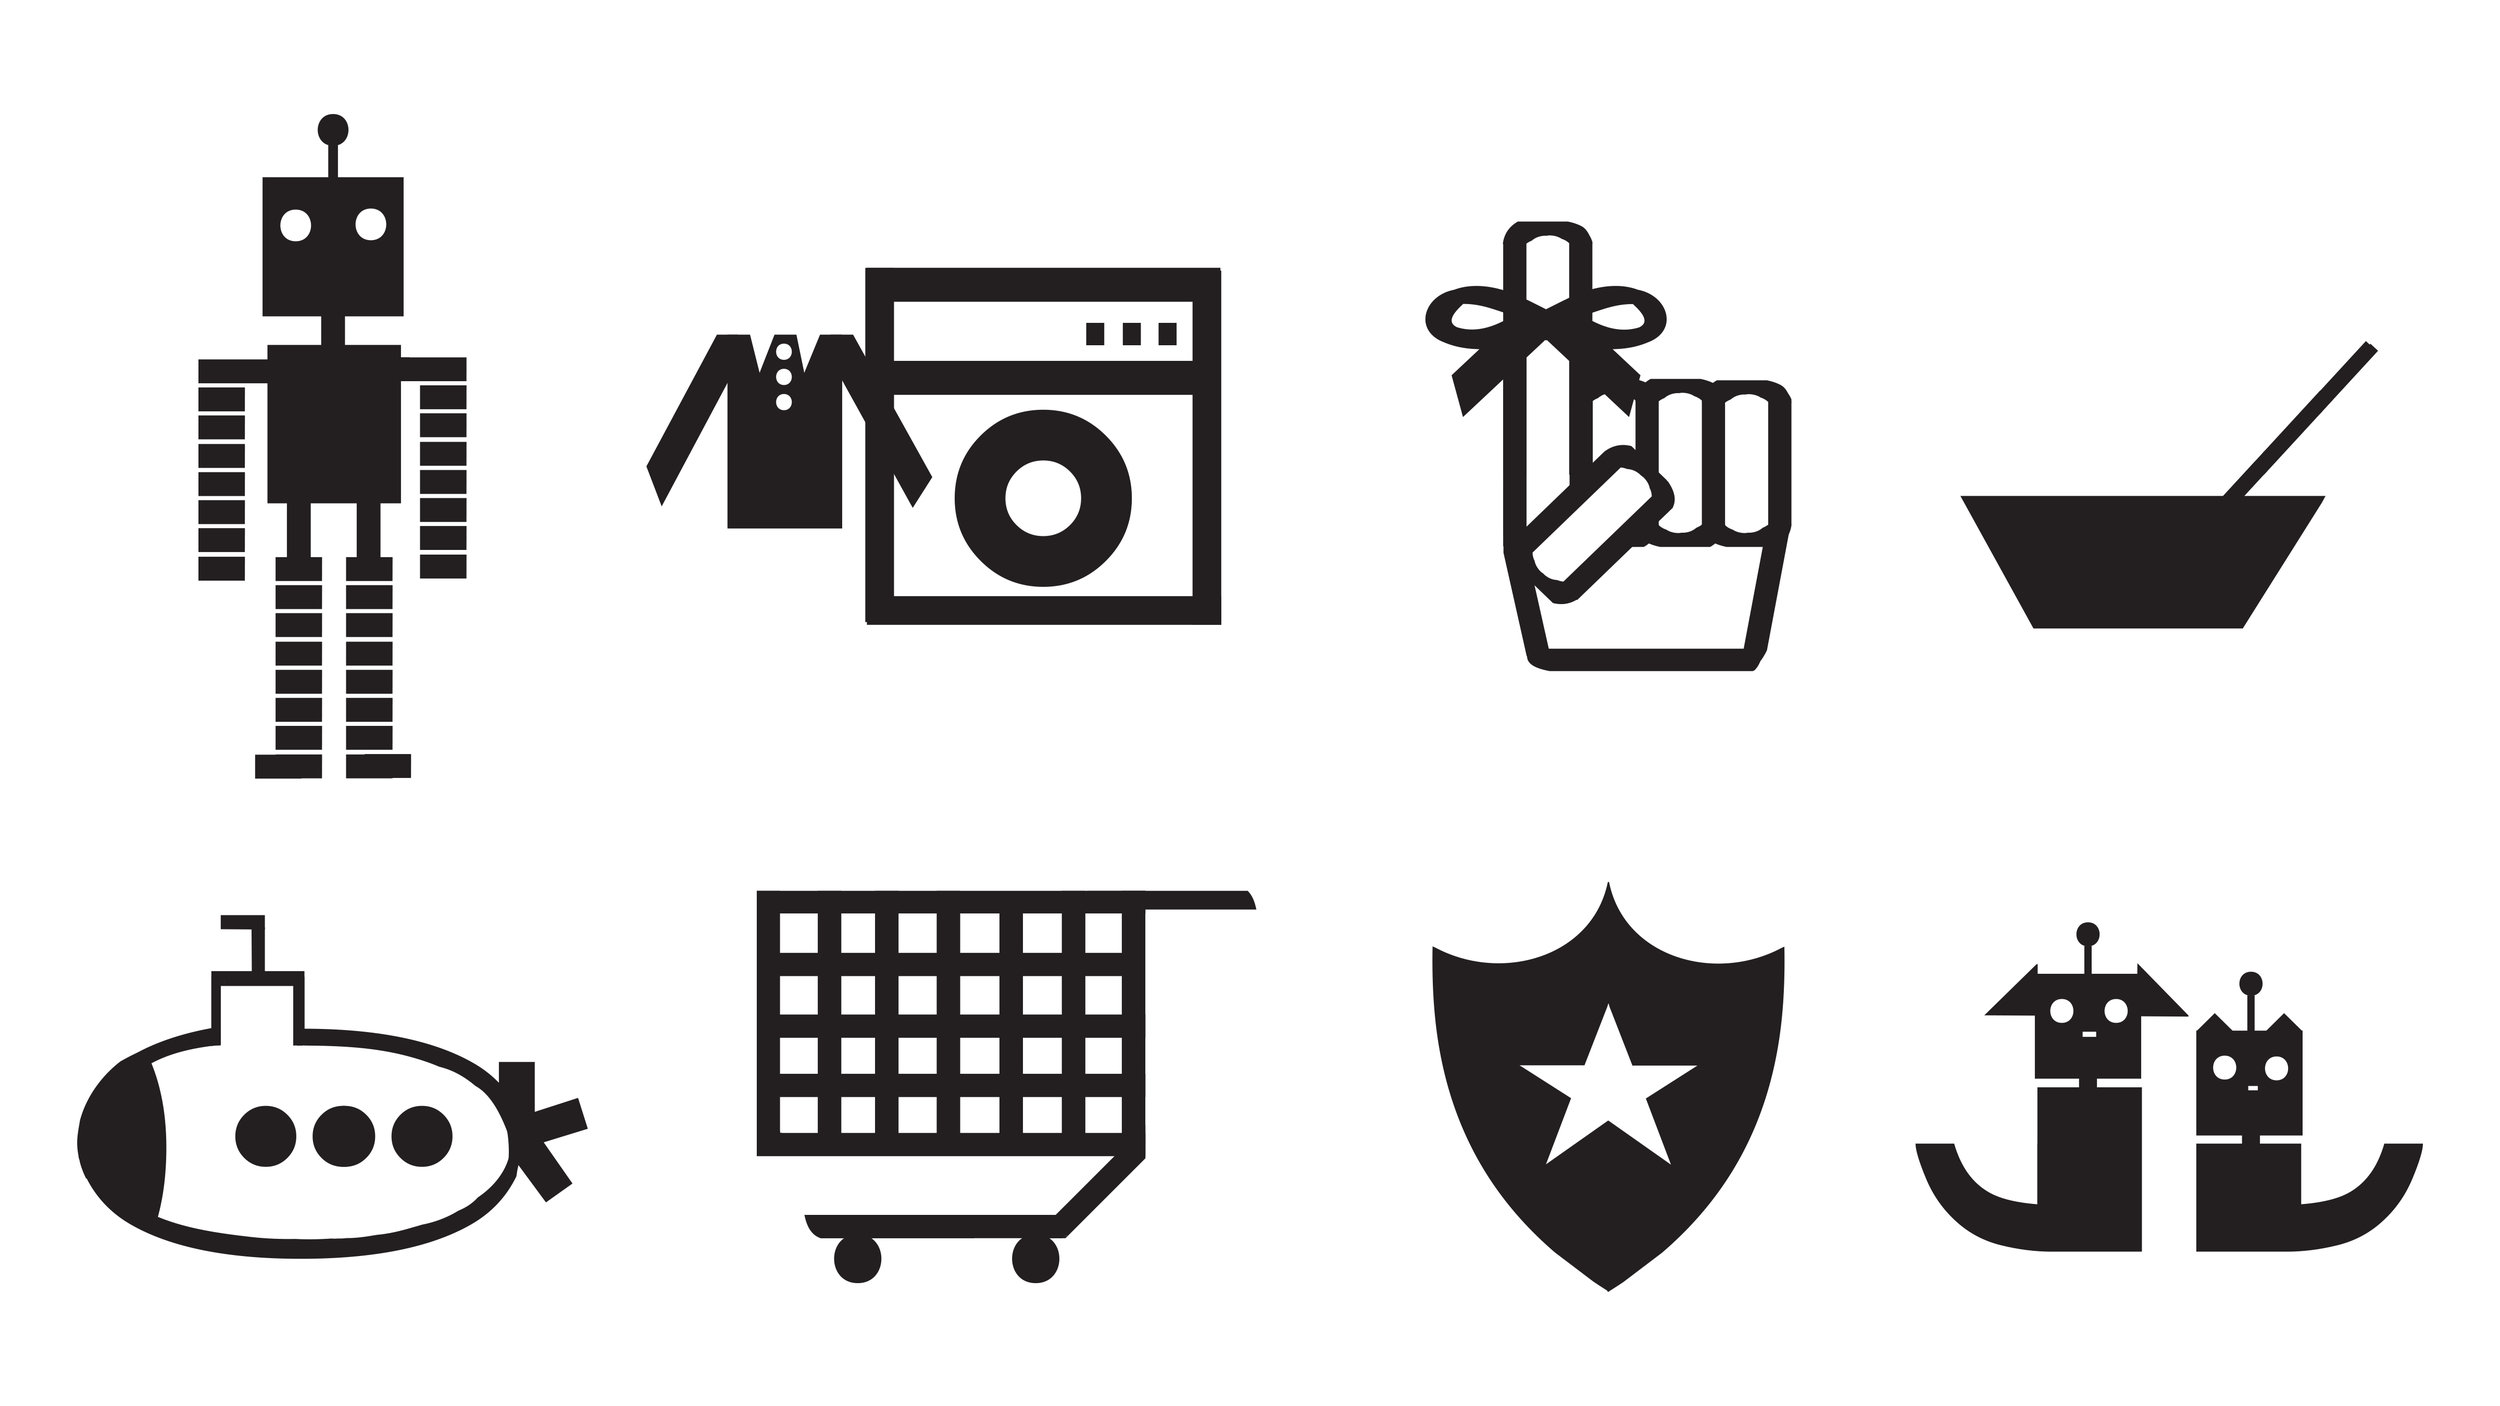 Initial Draft of Icon Set